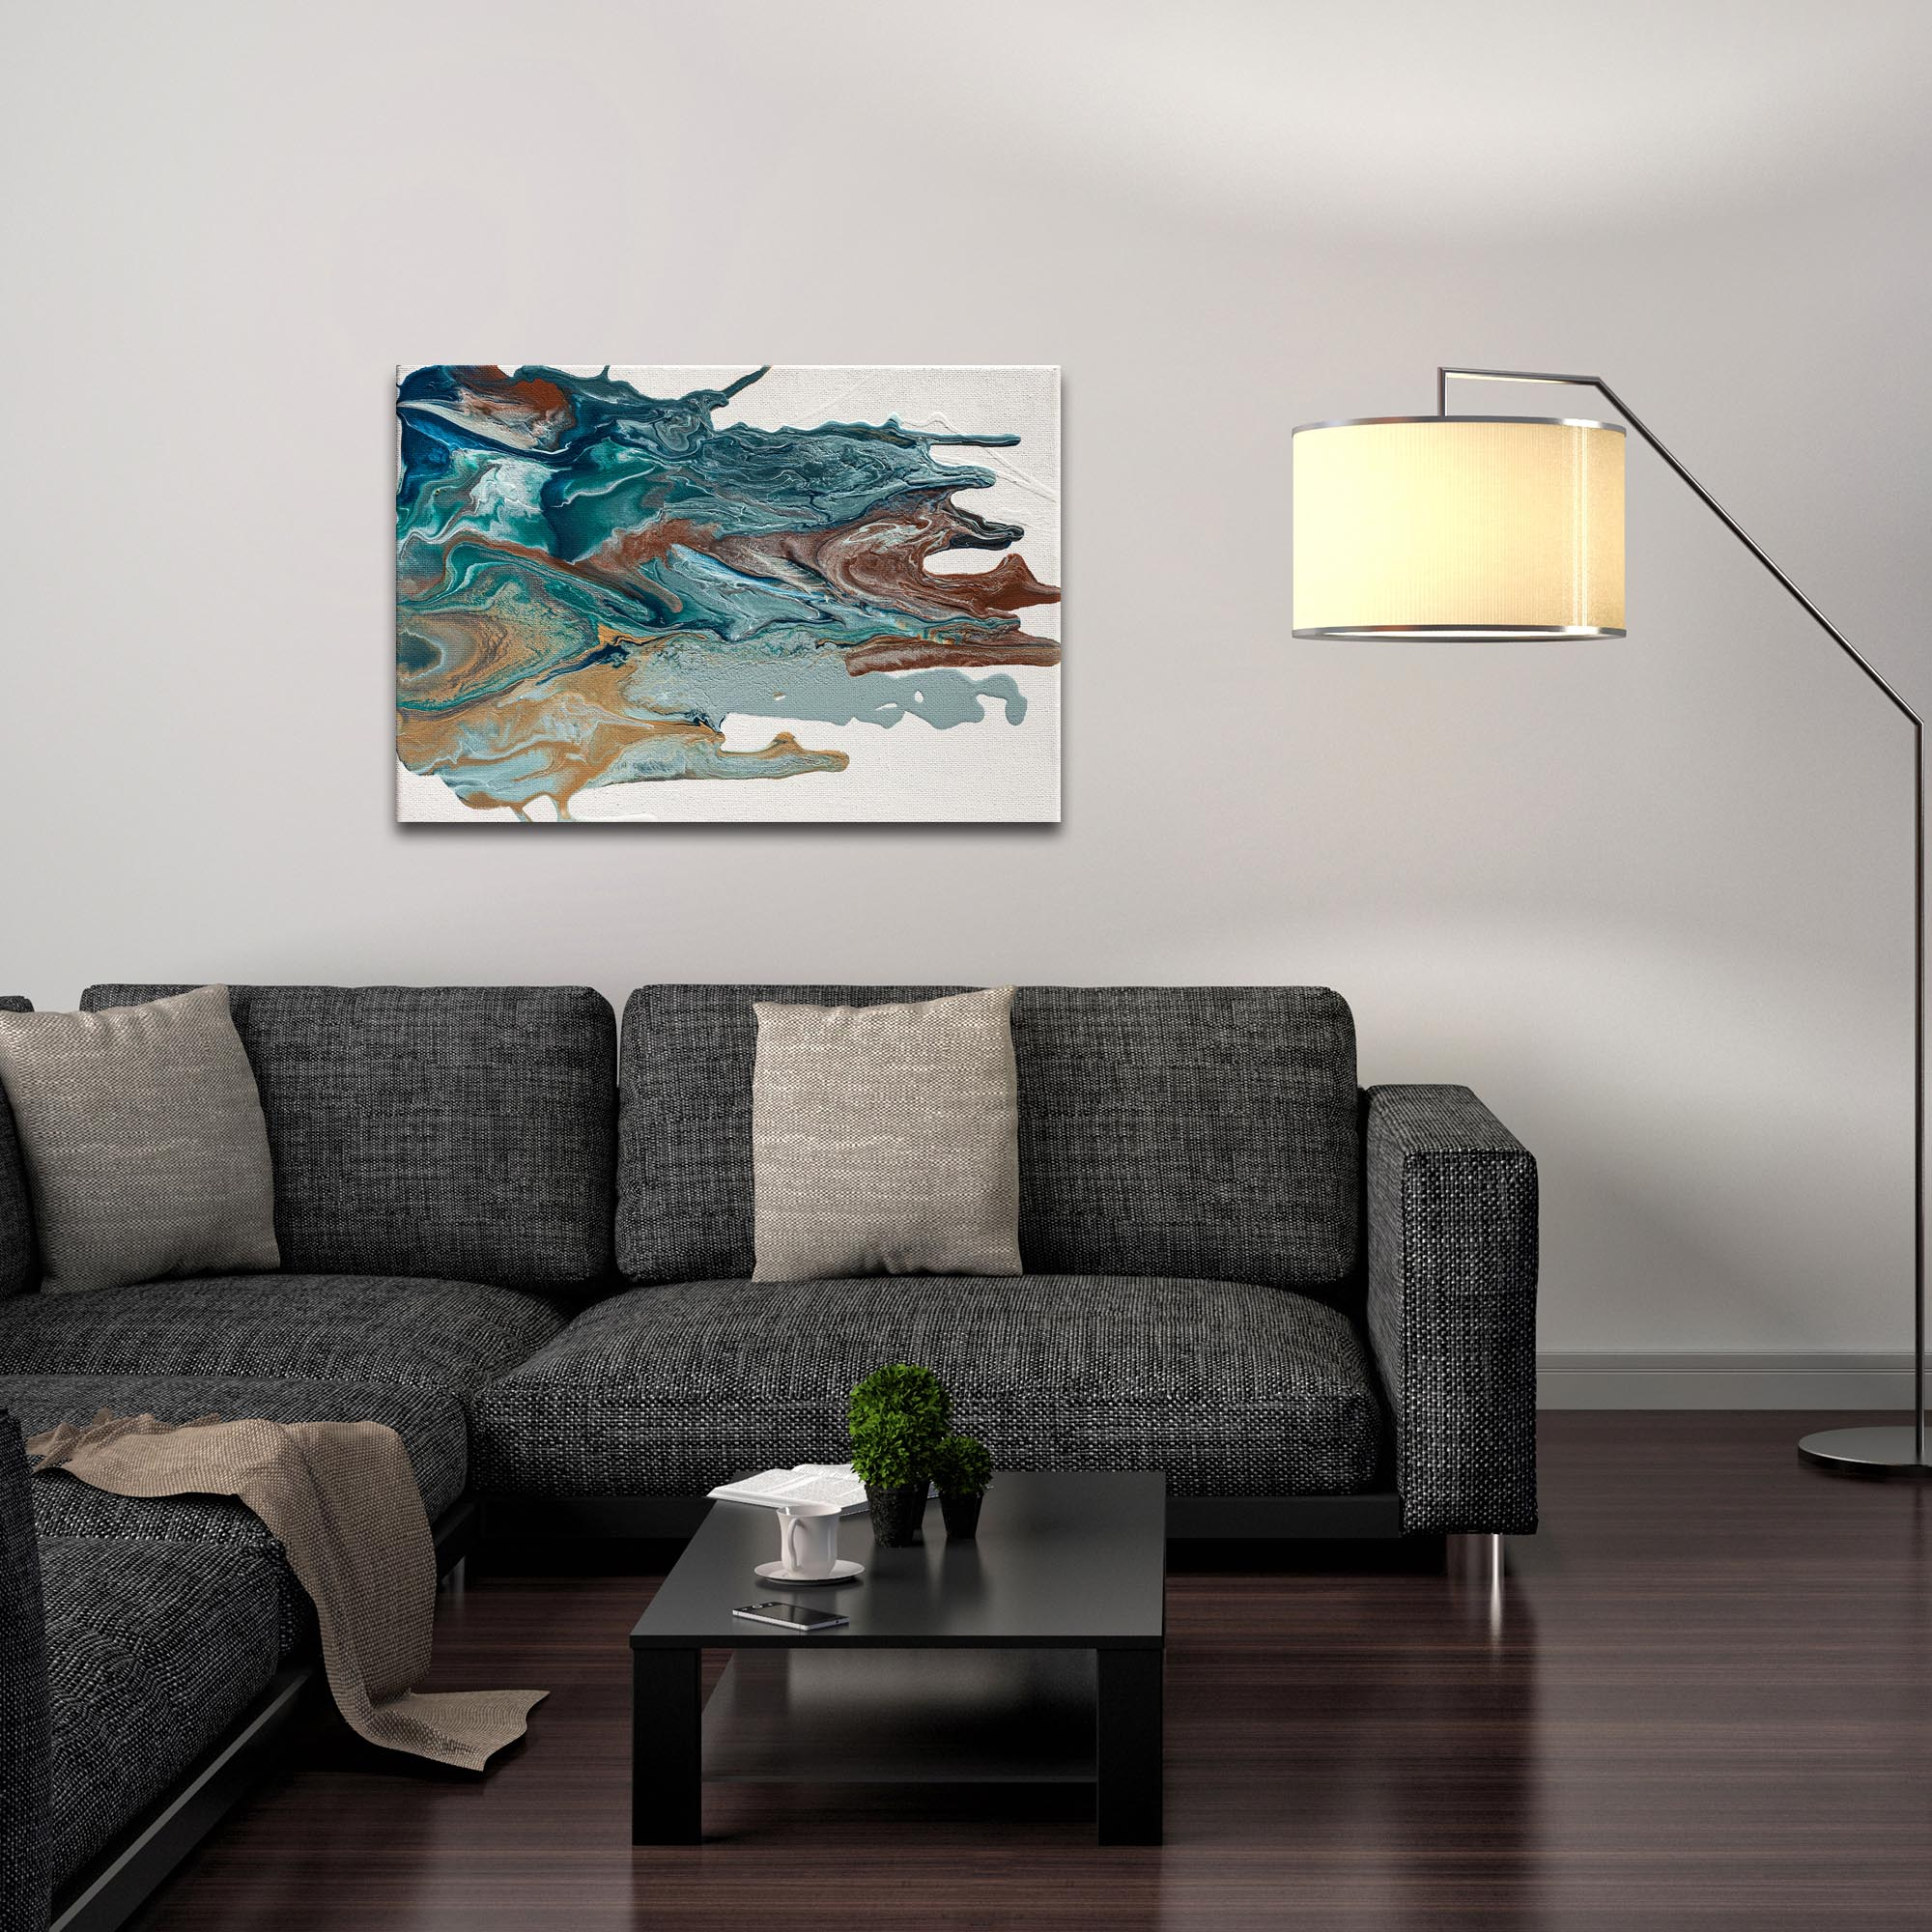 Abstract Wall Art 'Earth 1' - Urban Splatter Decor on Metal or Plexiglass - Lifestyle View